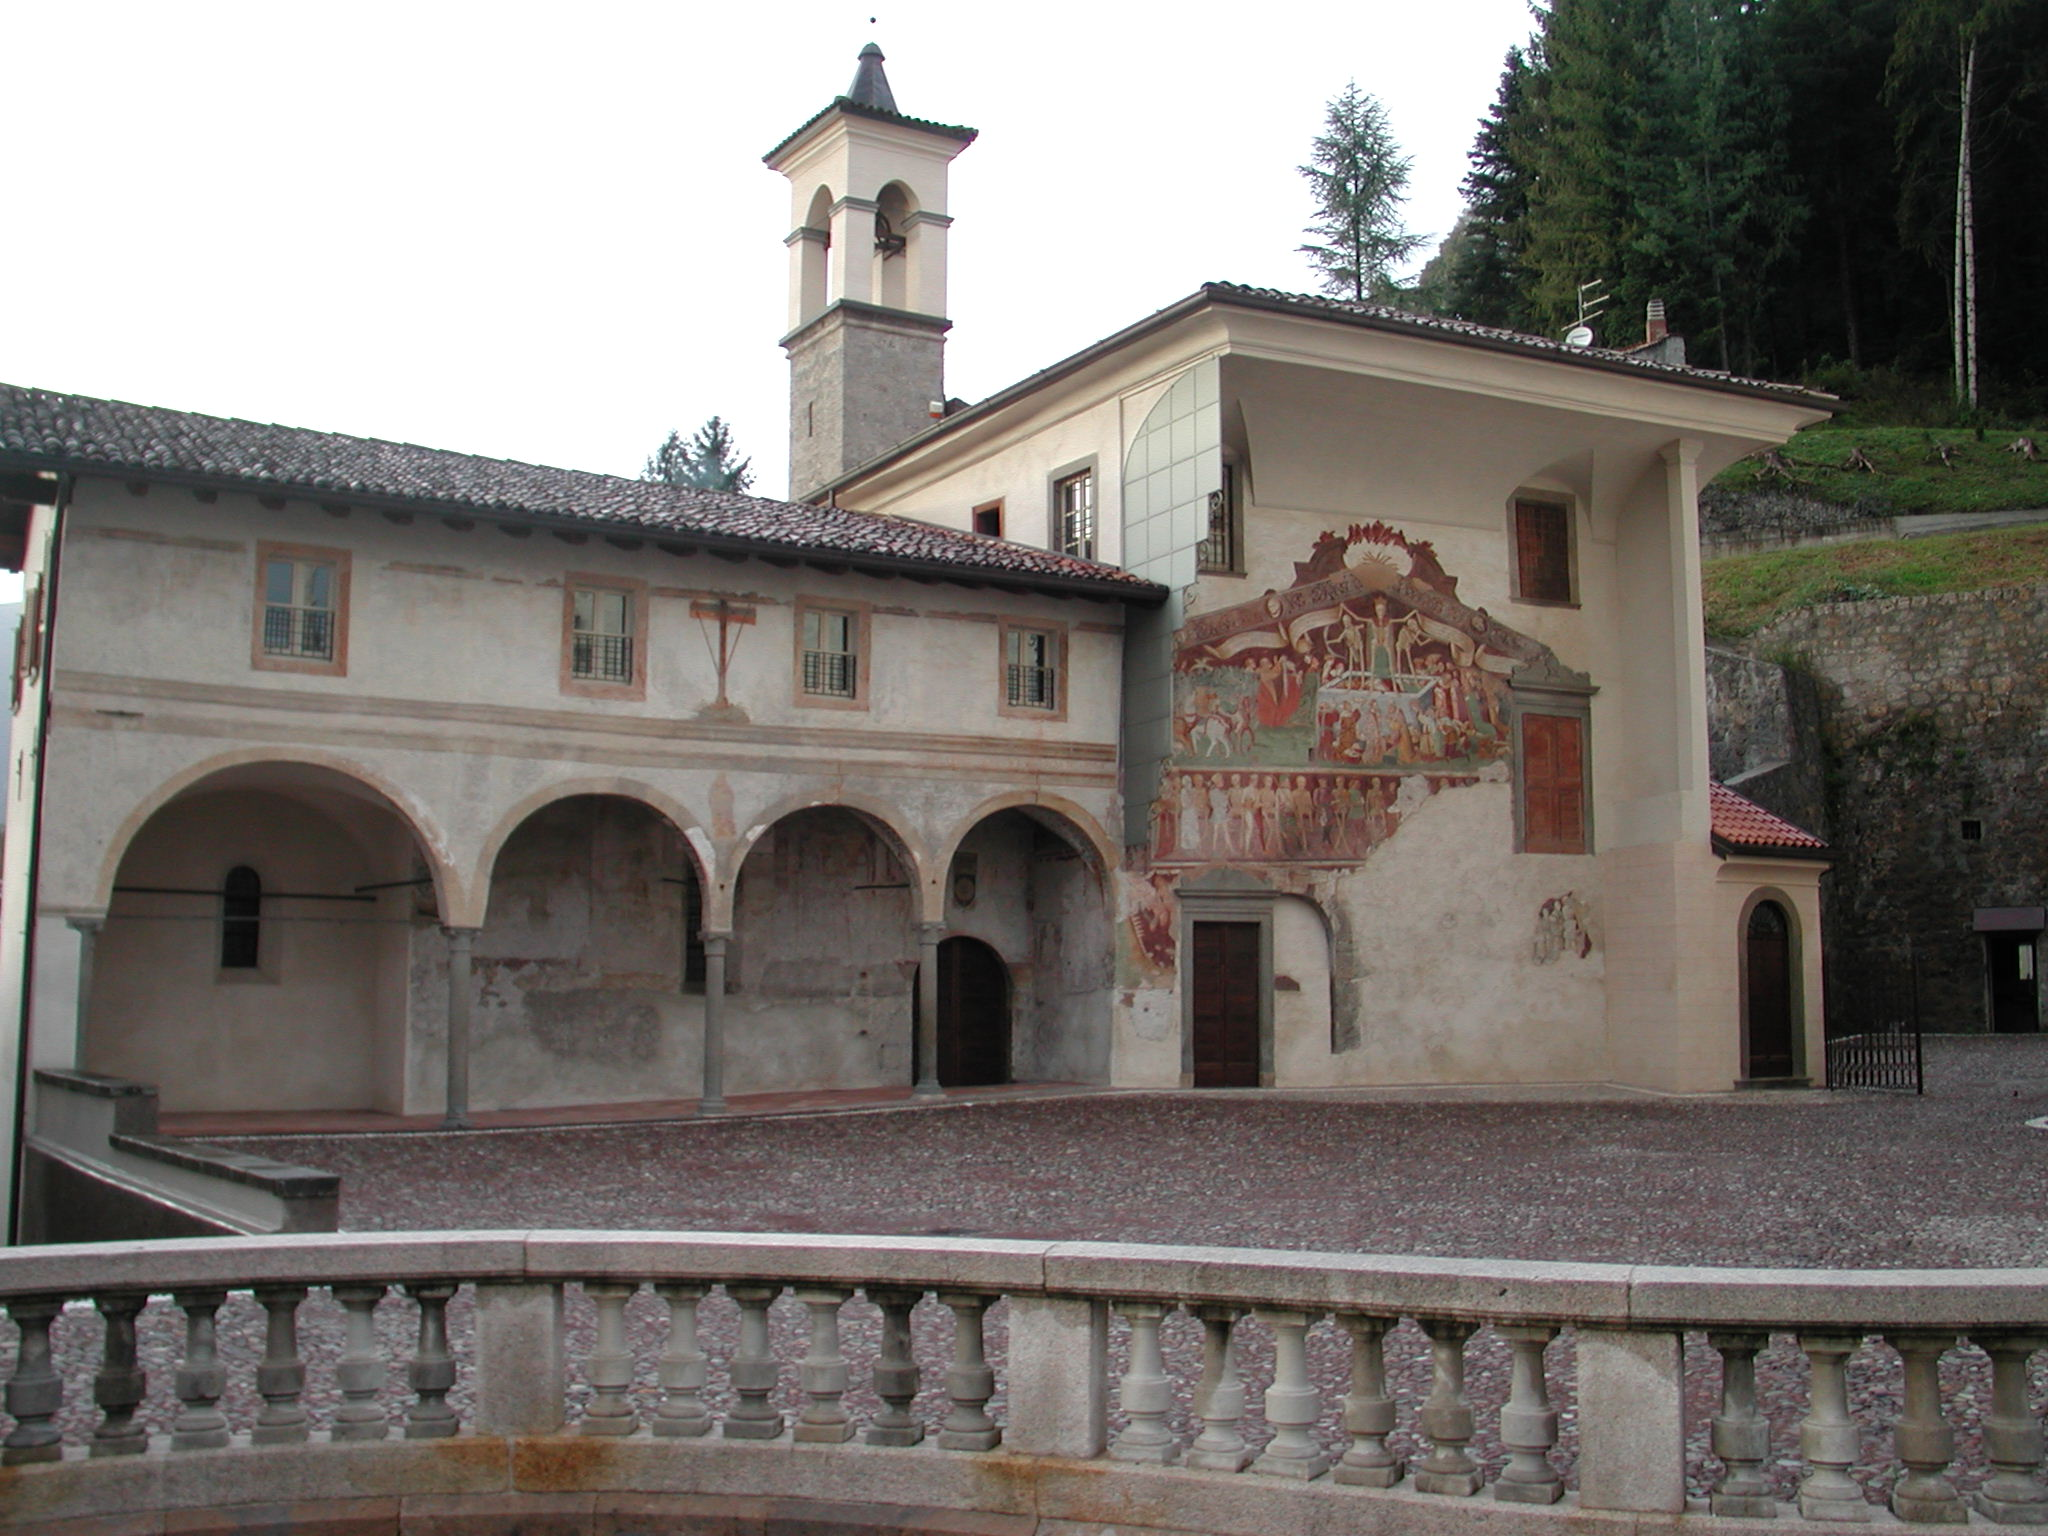 Places of Torture in Italy: Oratorio dei Disciplini in Clusone (BG)